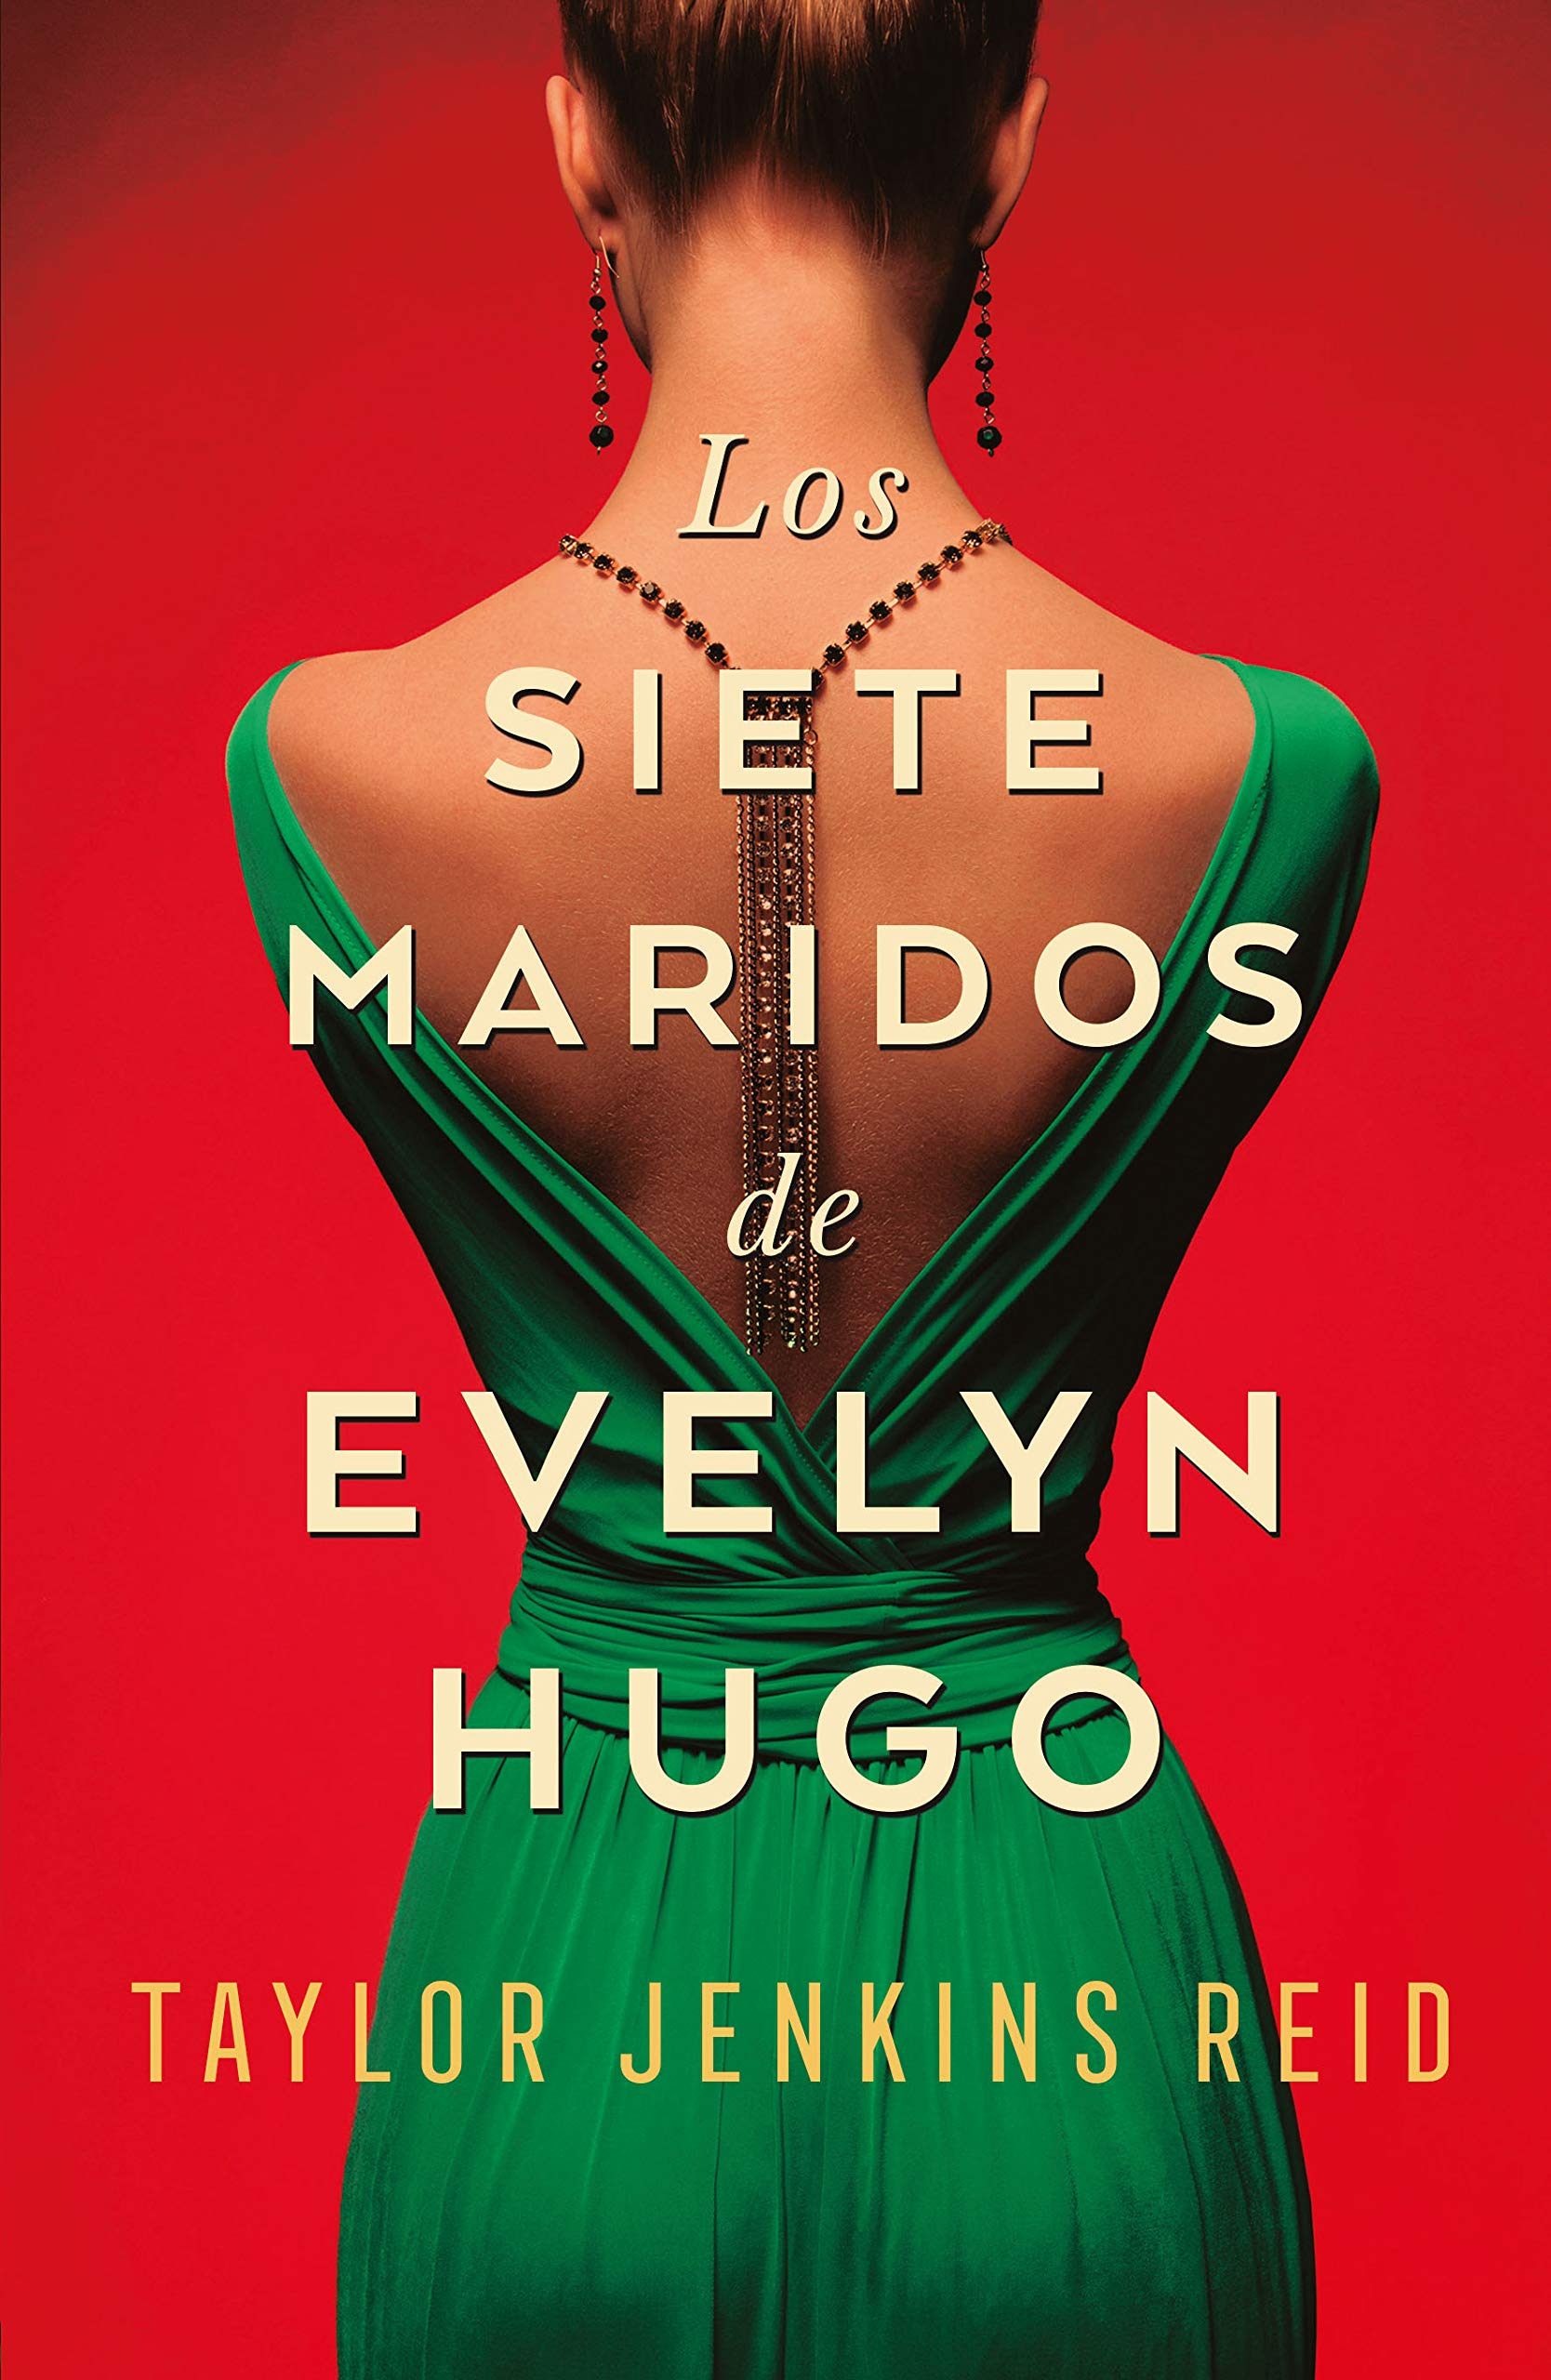 Los Siete Maridos De Evelyn Hugo Umbriel Narrativa Spanish Edition Jenkins Reid Taylor Escoms Nora Inés 9788416517275 Books